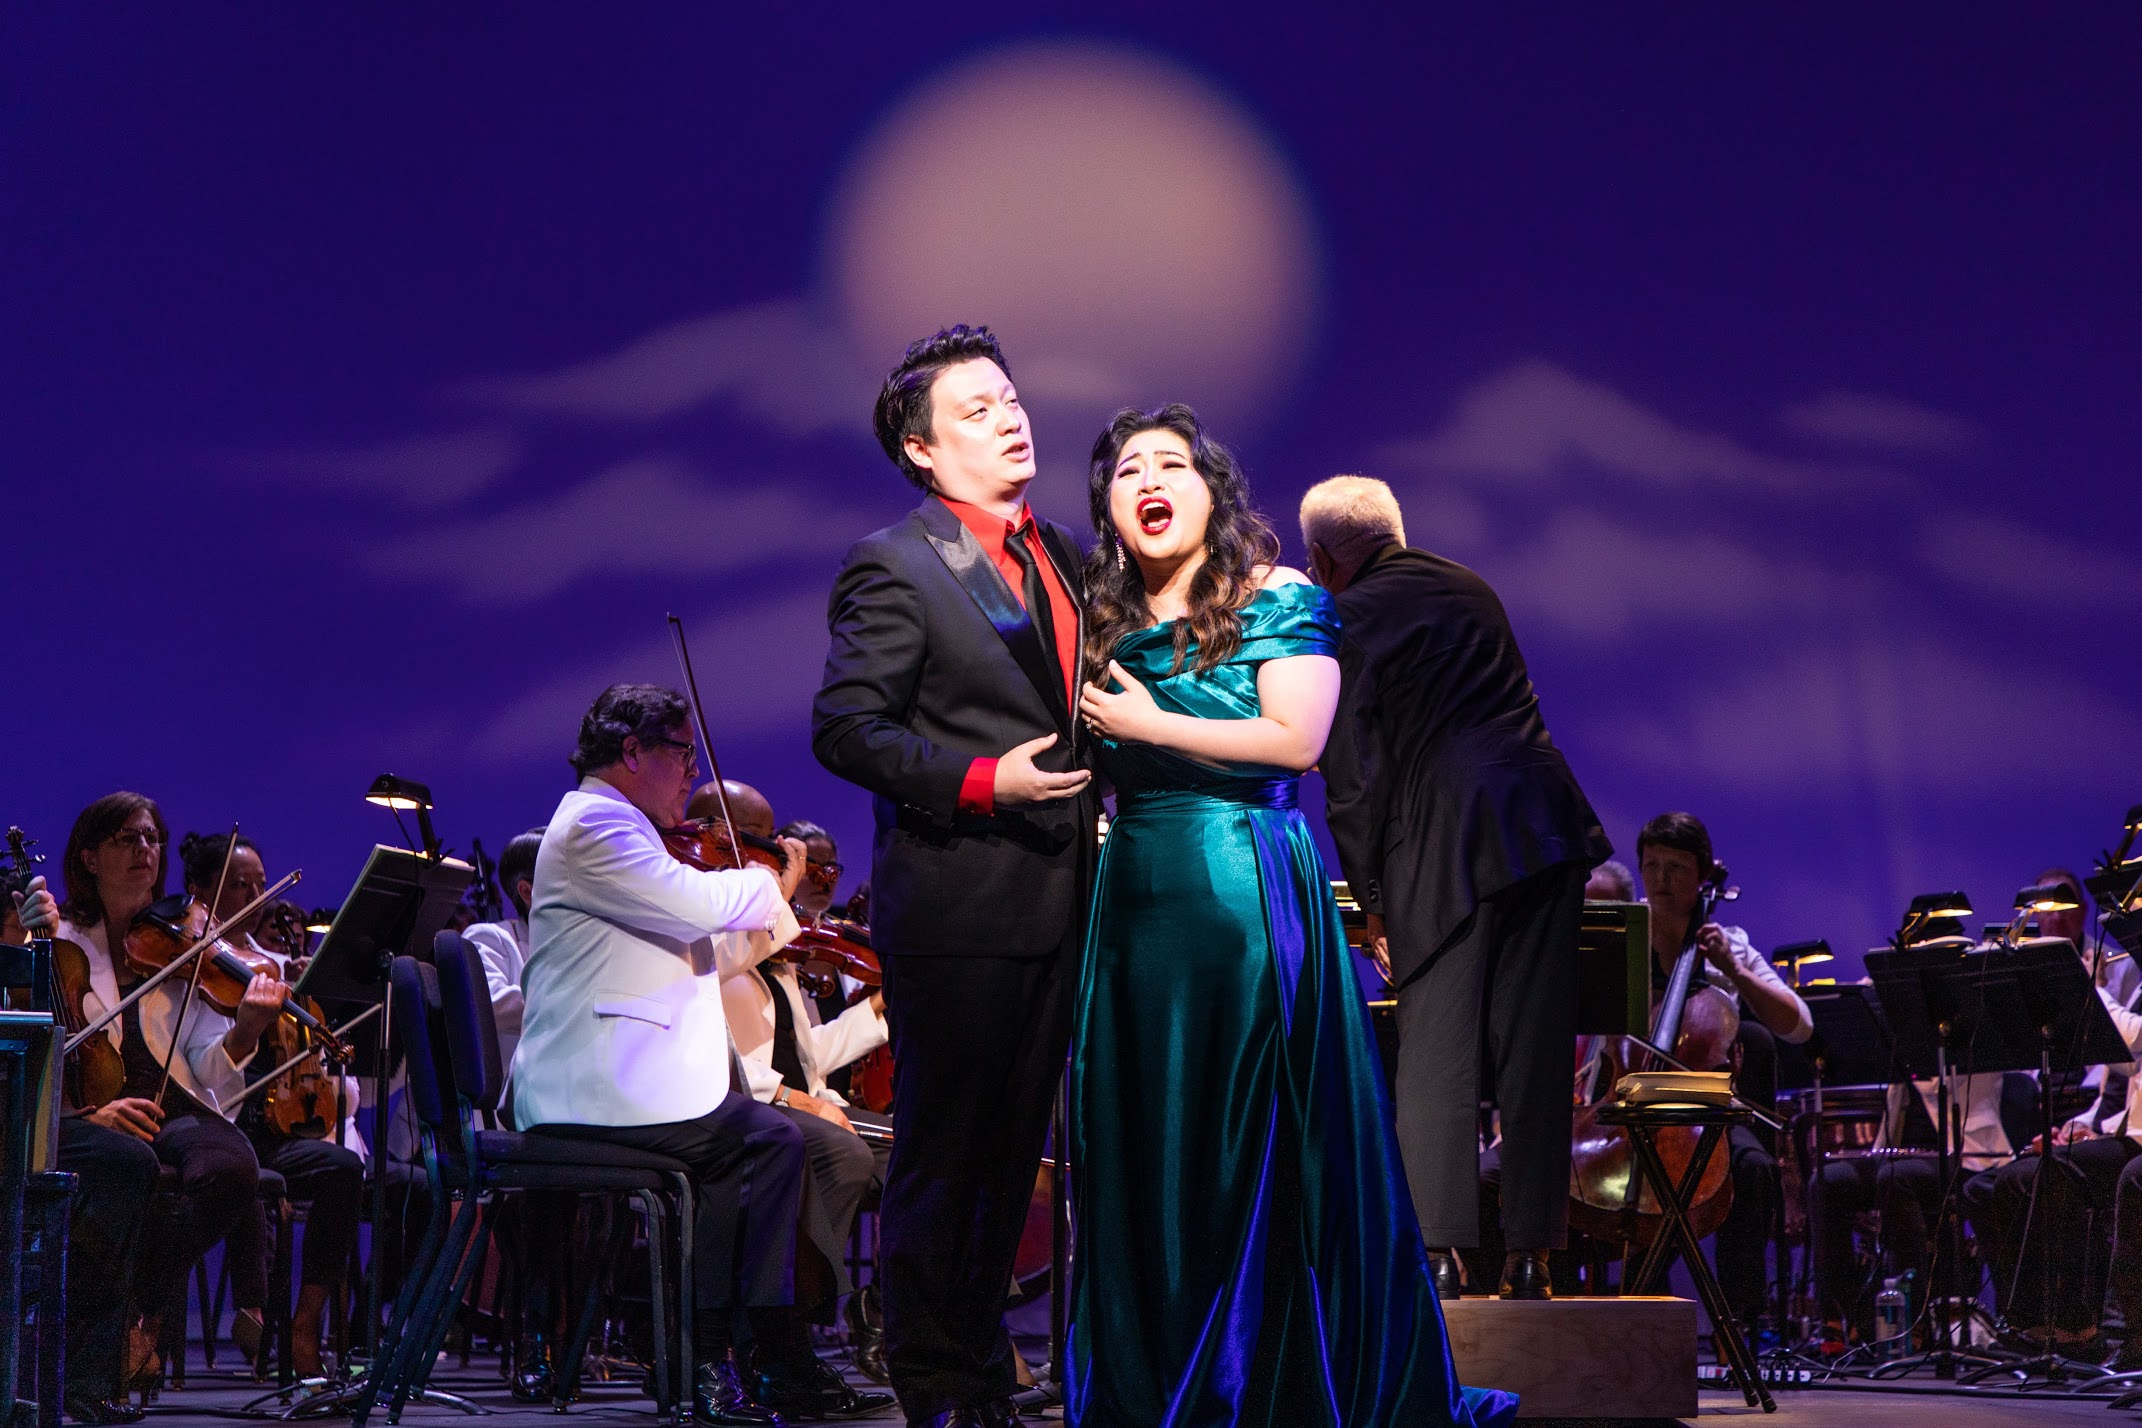 Yongxi Chen as Rodolfo and Youna Hartgraves as Mimi. Photo by Sam Trotman, Jr.; courtesy of Maryland Lyric Opera..